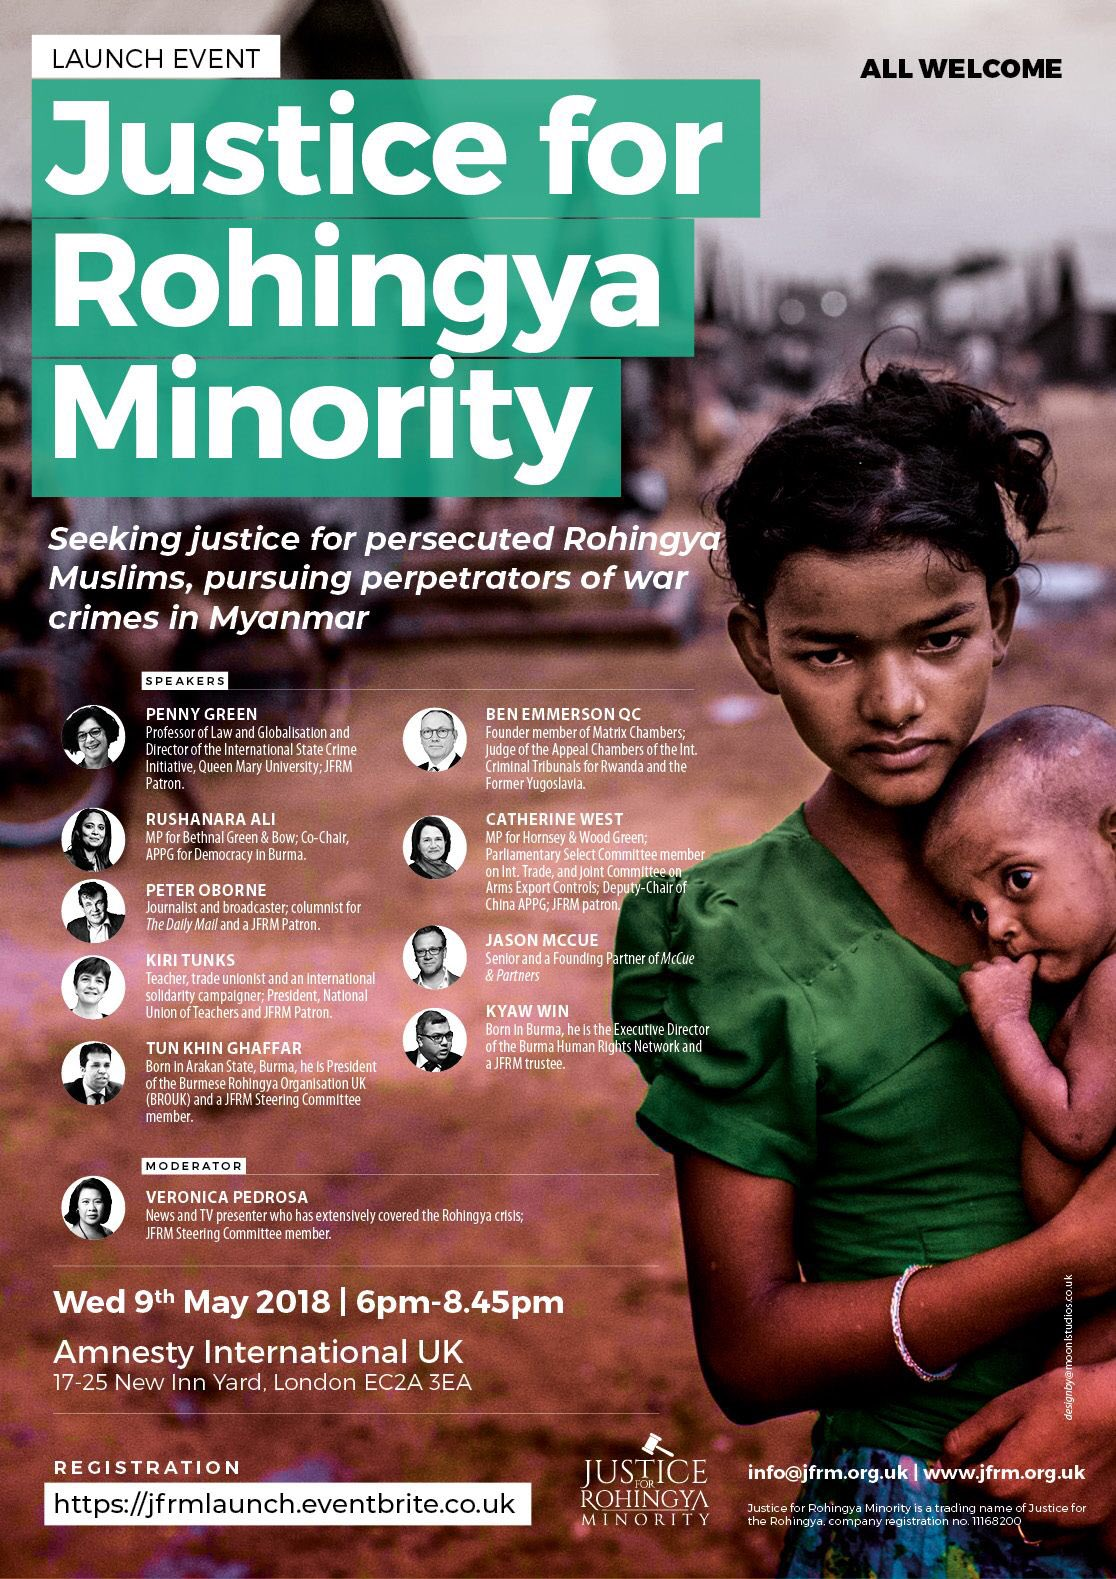 JUSTICE FOR ROHINGYA MINORITY